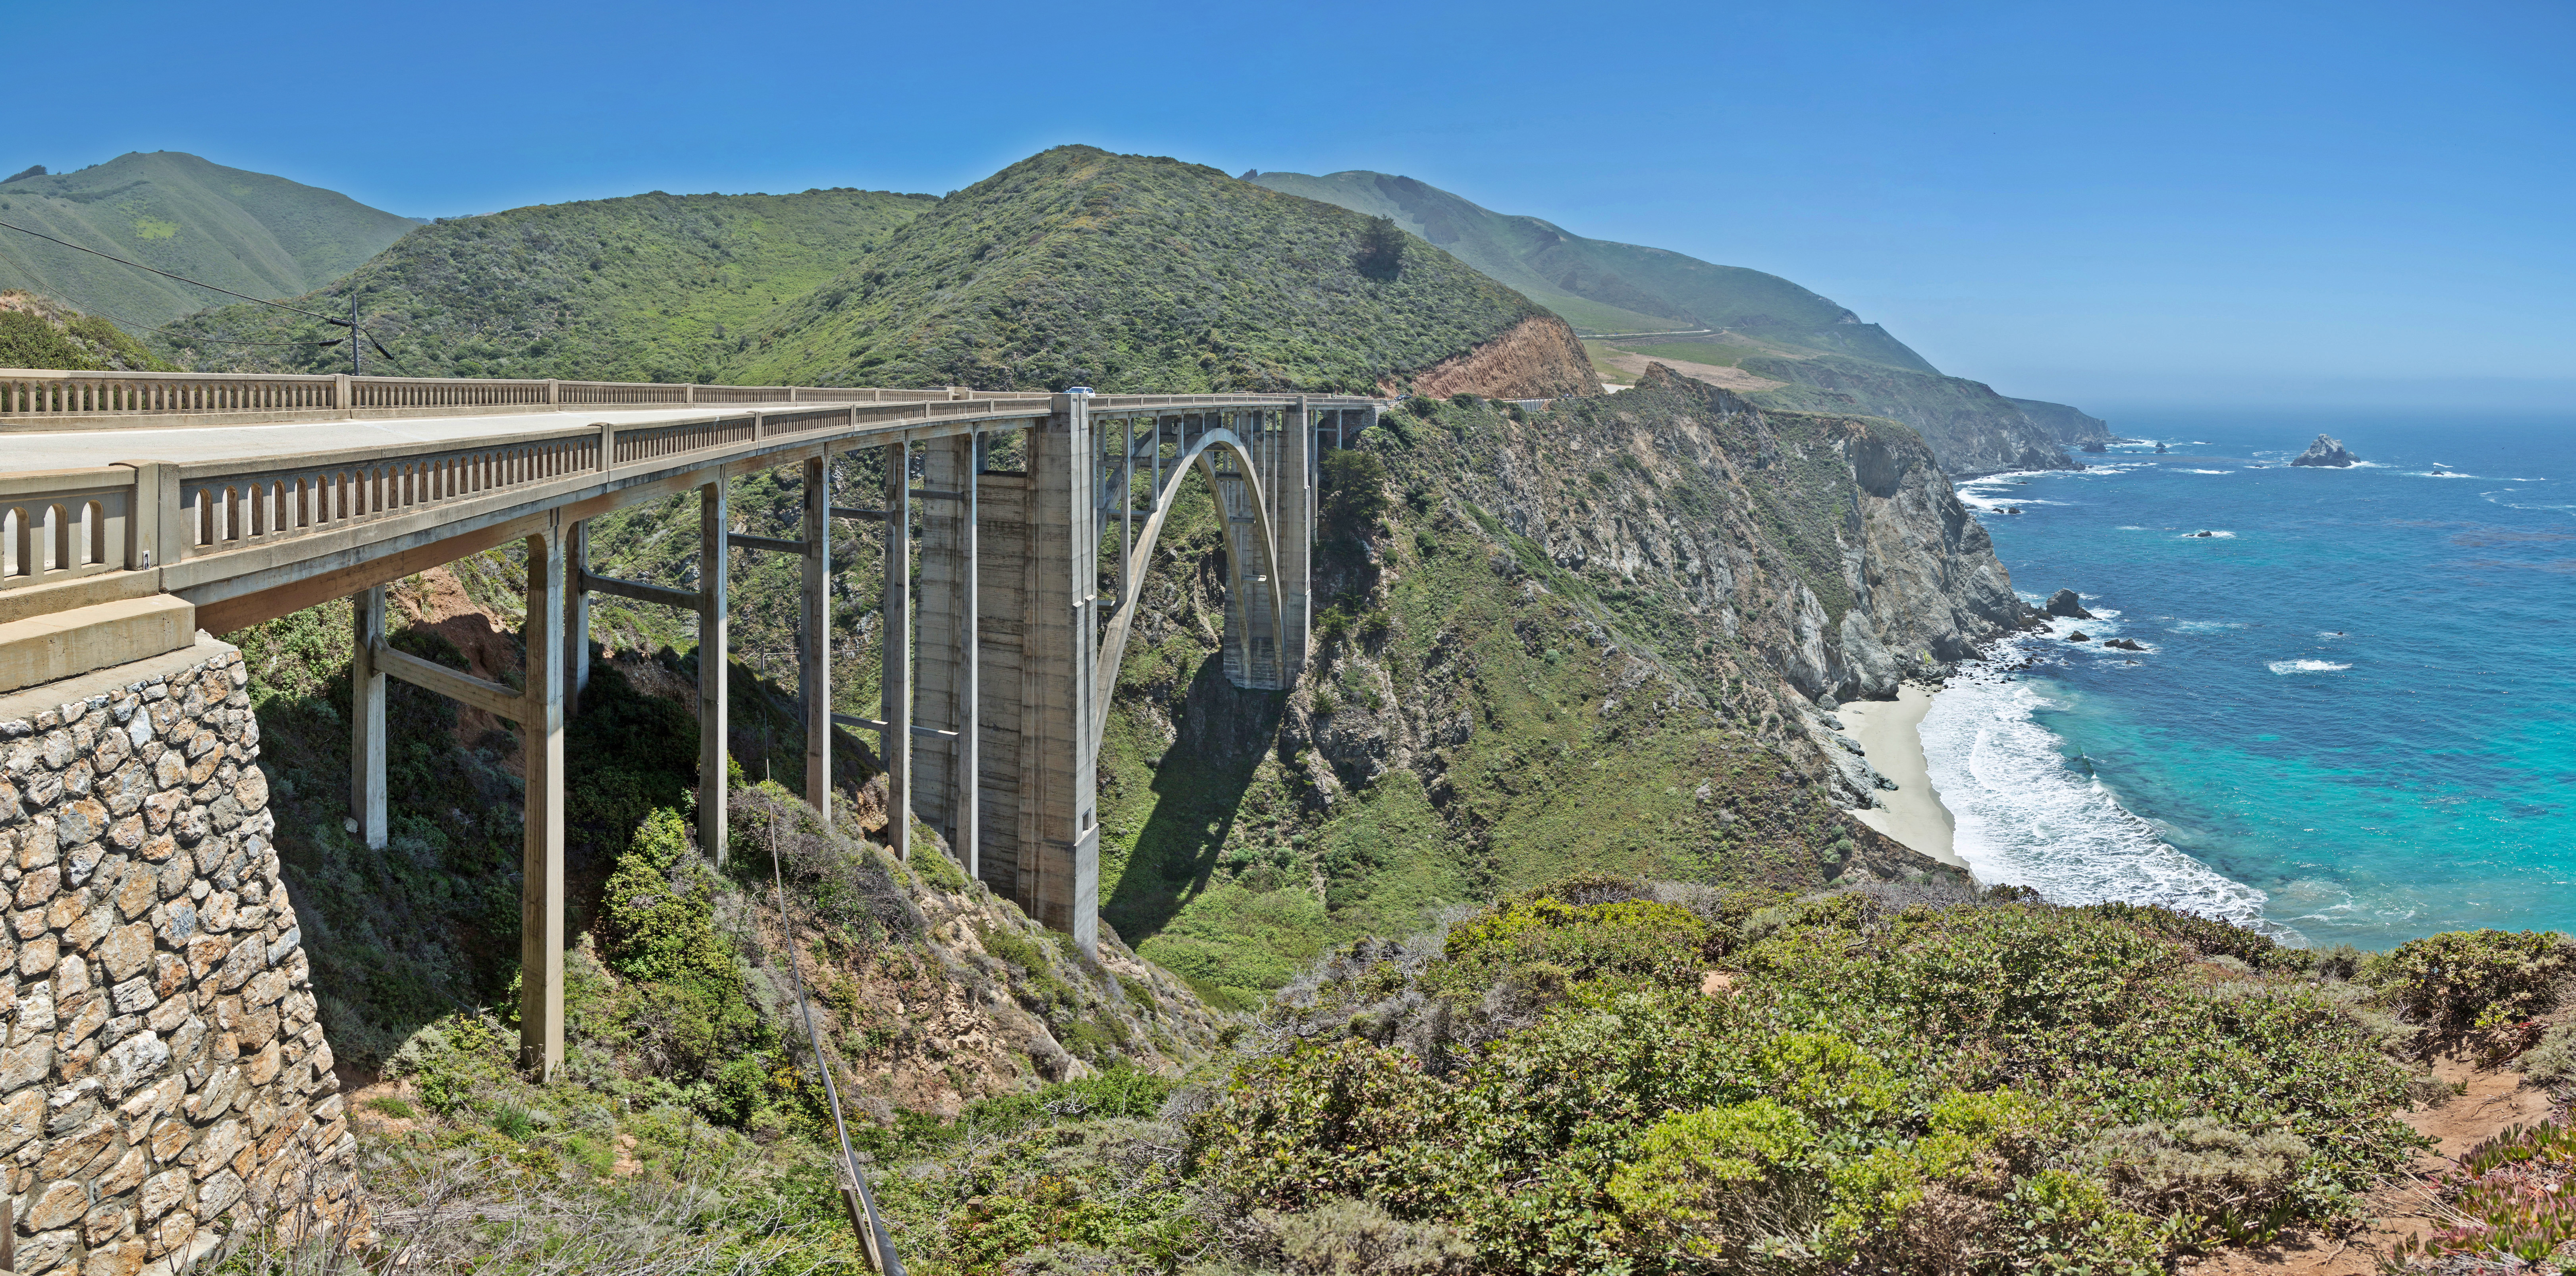 central states of usa with File Bixby Creek Bridge  California  Usa   May 2013 Edit on 145 in addition Flag Of Mexico Flag Pixel Art moreover Nv furthermore 30 Best Airlines In The World together with M4A3E8 Sherman.